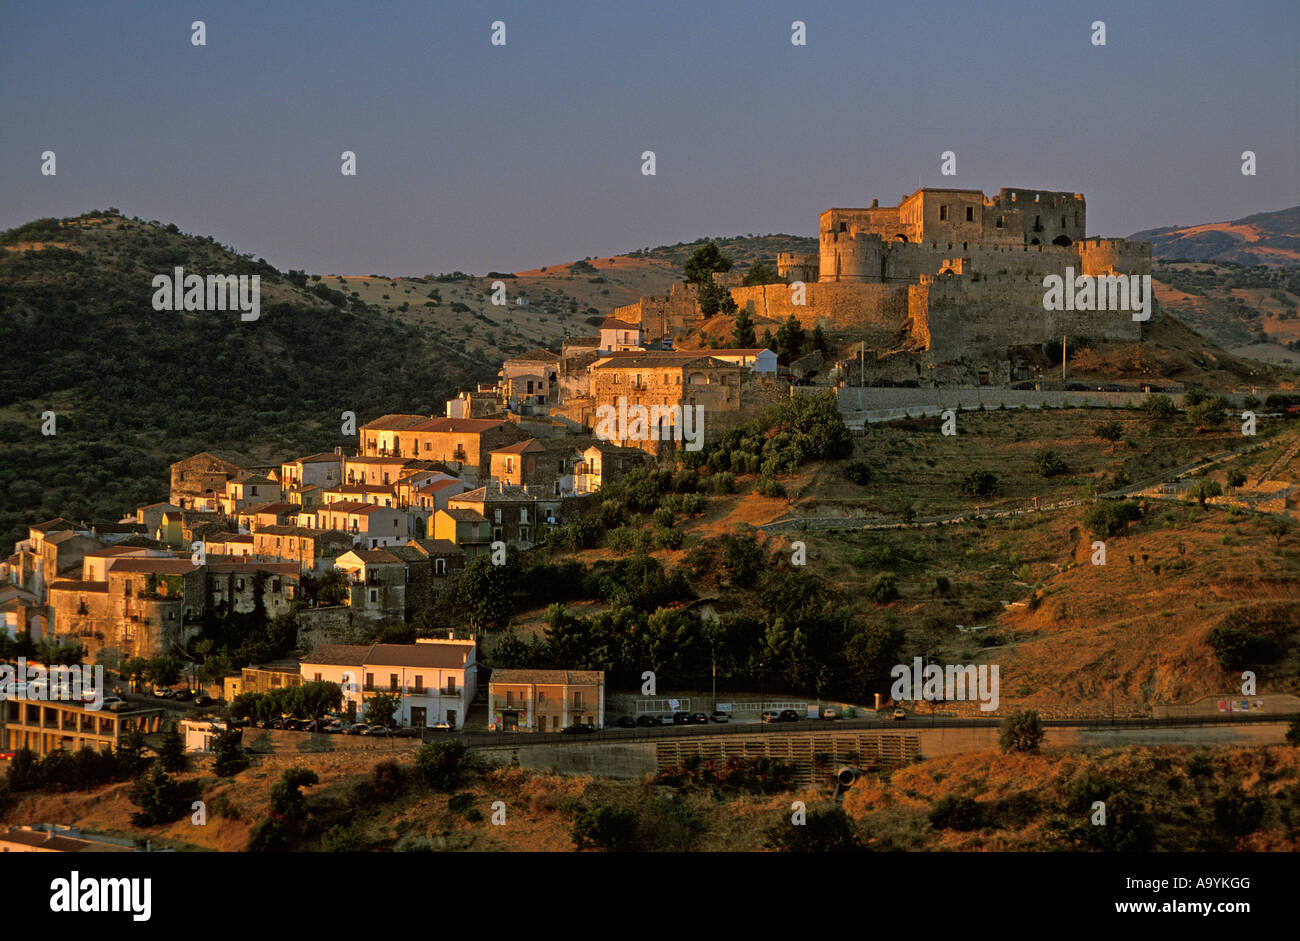 Castle, Rocca Imperiale, Calabria, Italy Stock Photo